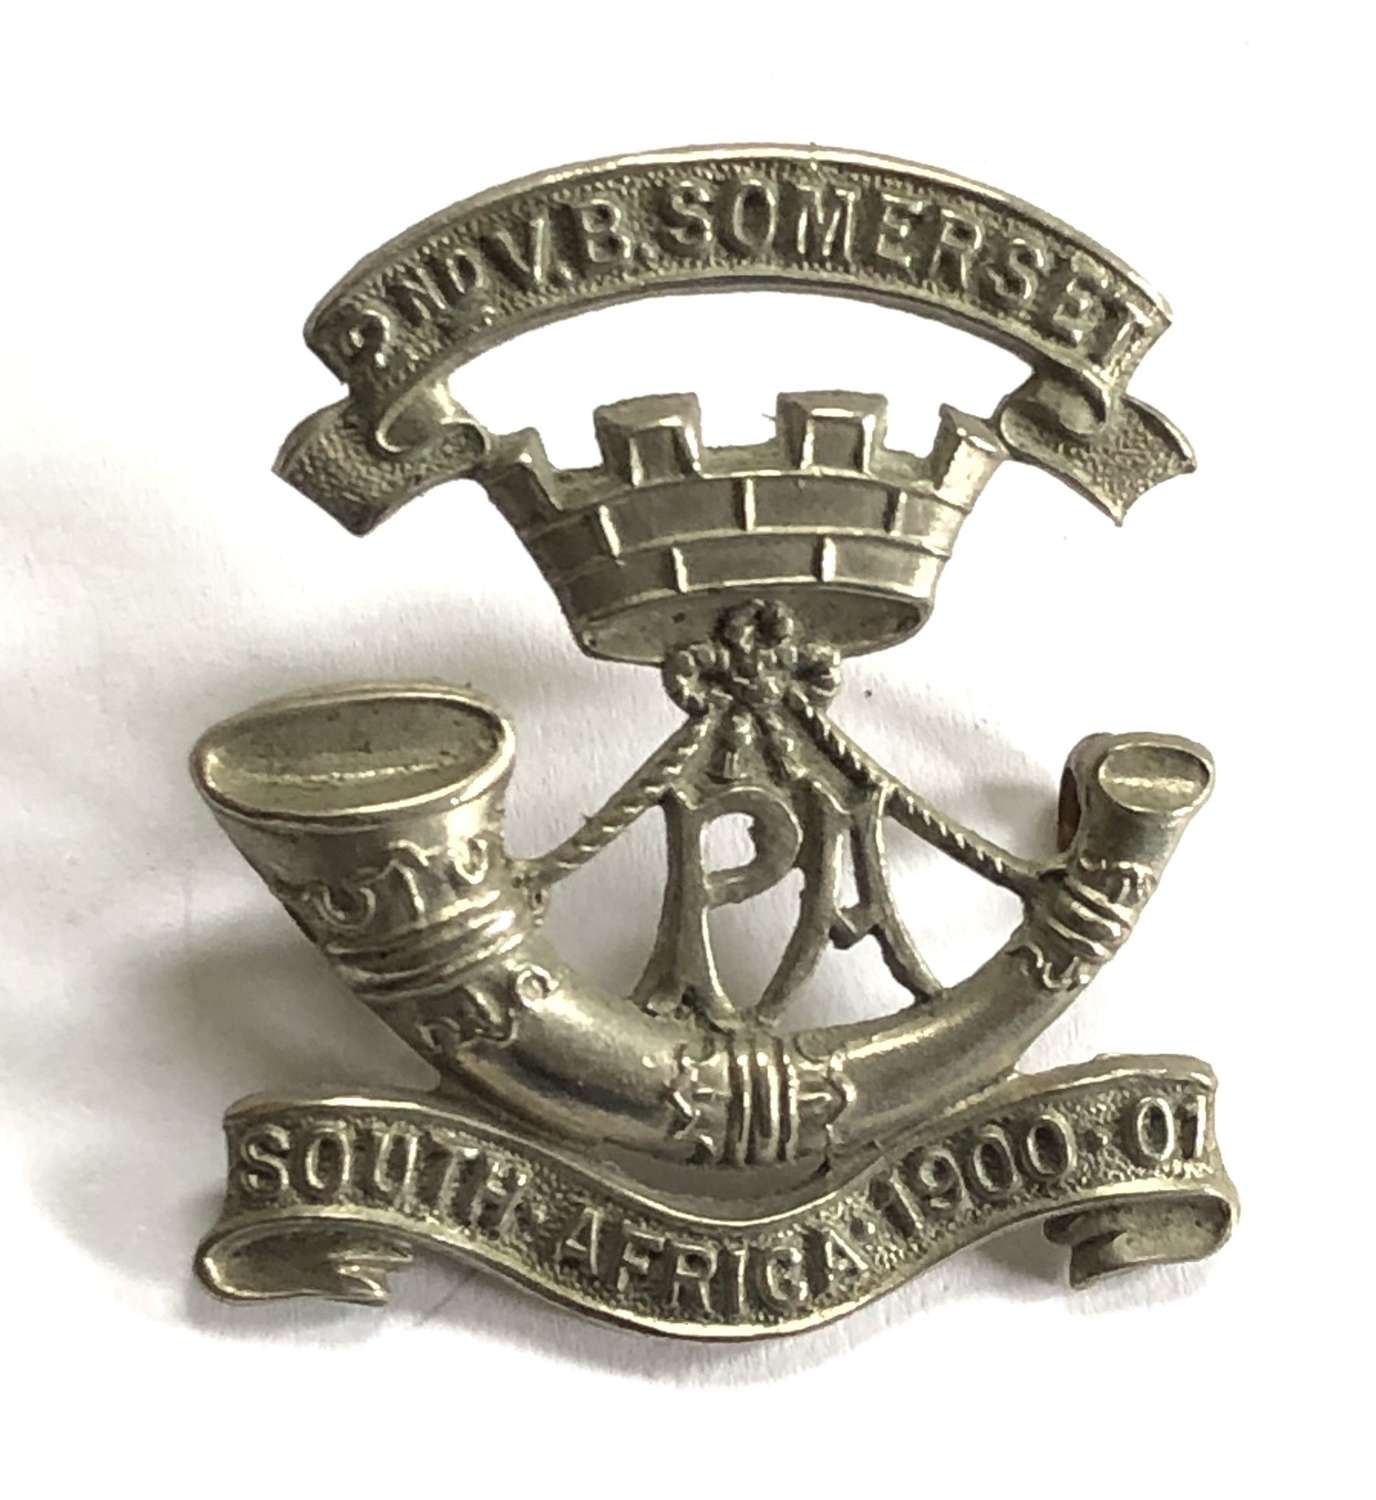 2nd VB Somerset Light Infantry badge c1905-08 only